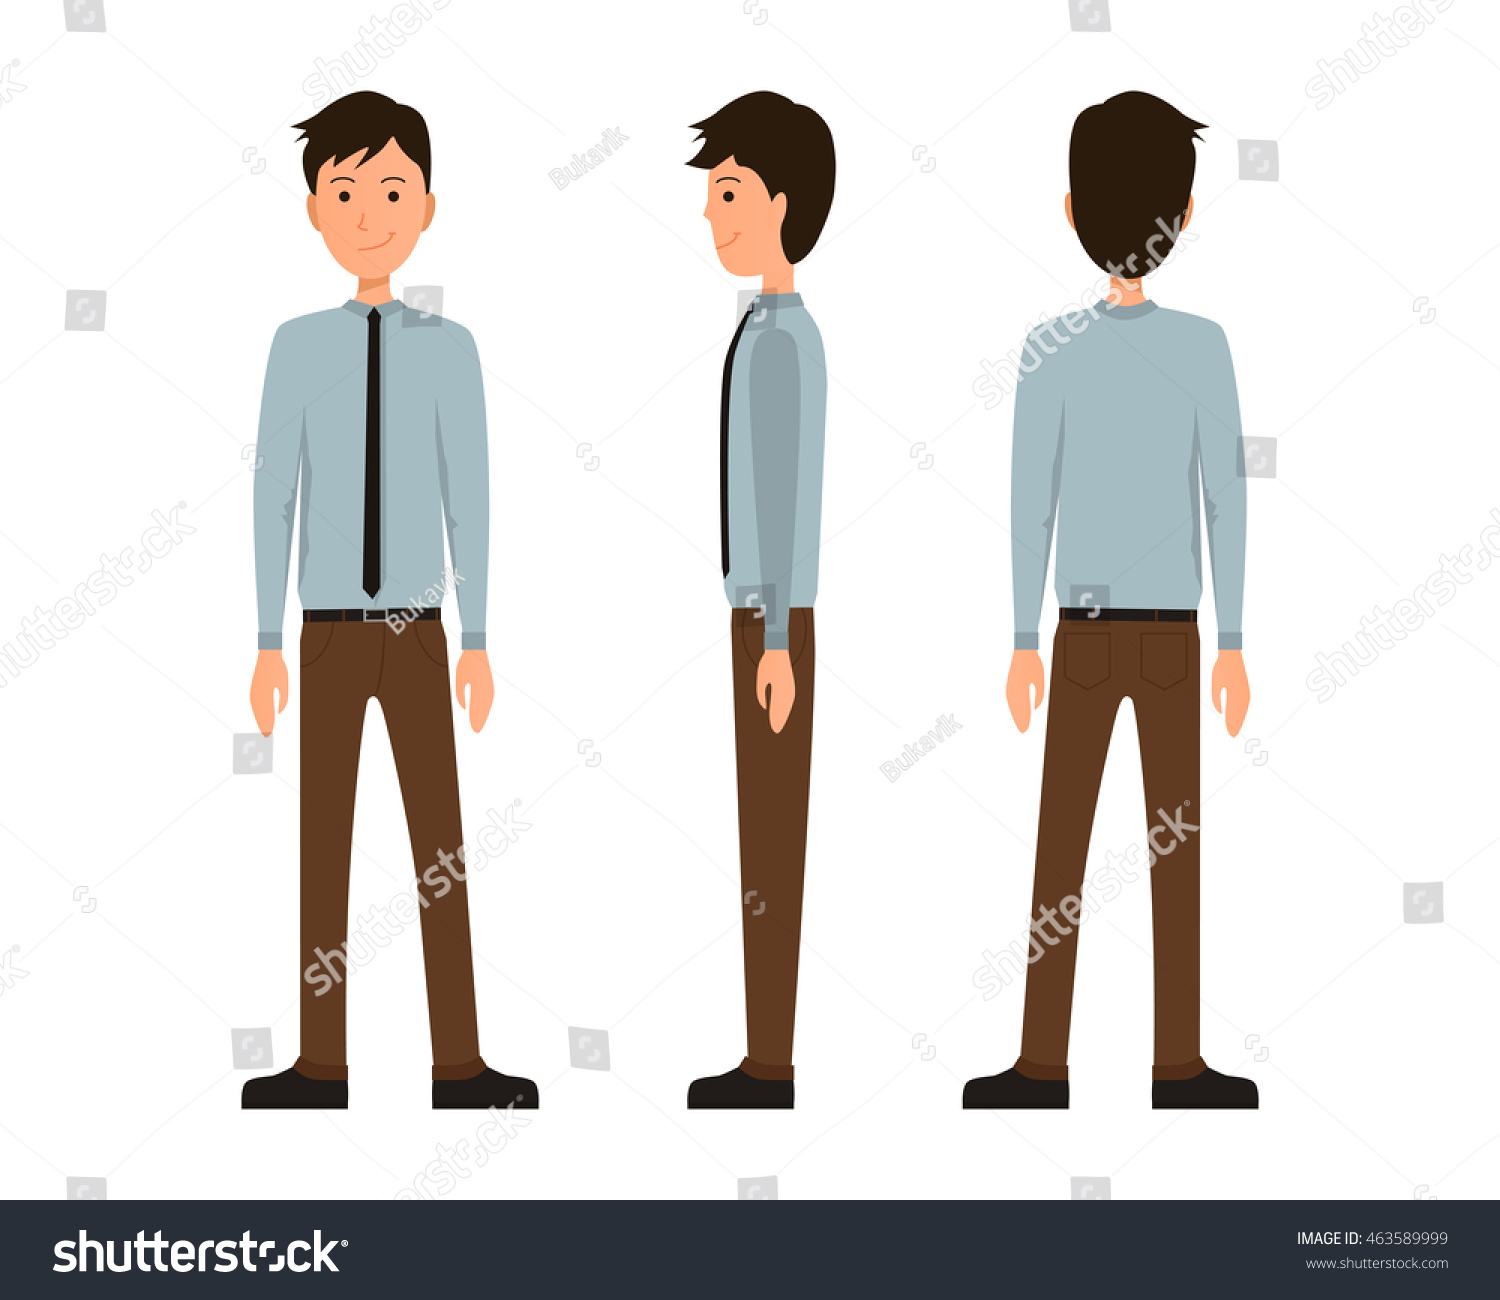 Vector illustration three business men official stock vector vector illustration of three business men in official clothes under the white background flat people ccuart Choice Image